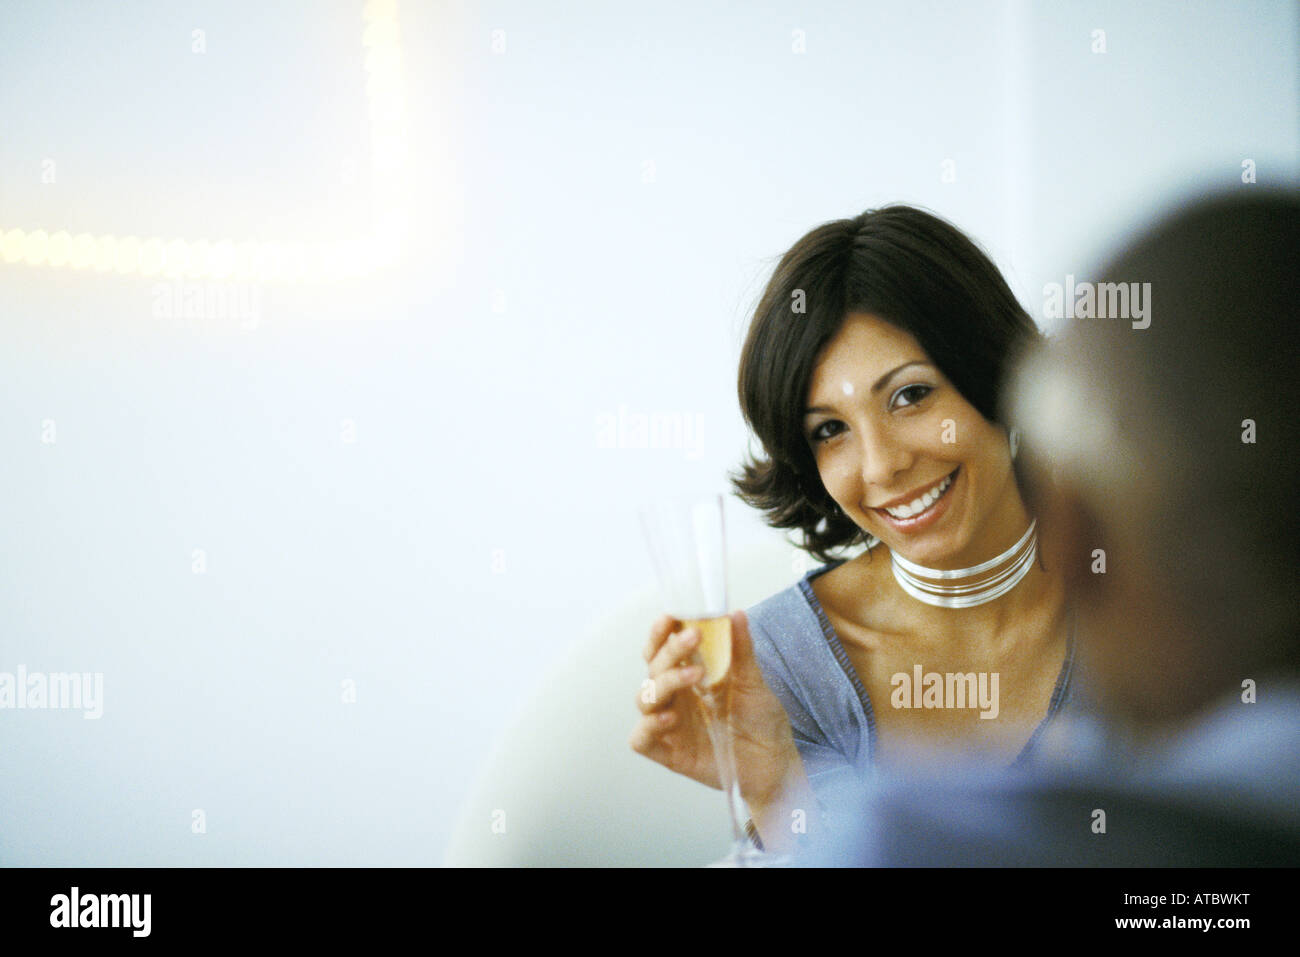 Woman holding champagne glass, smiling at camera, man in foreground - Stock Image